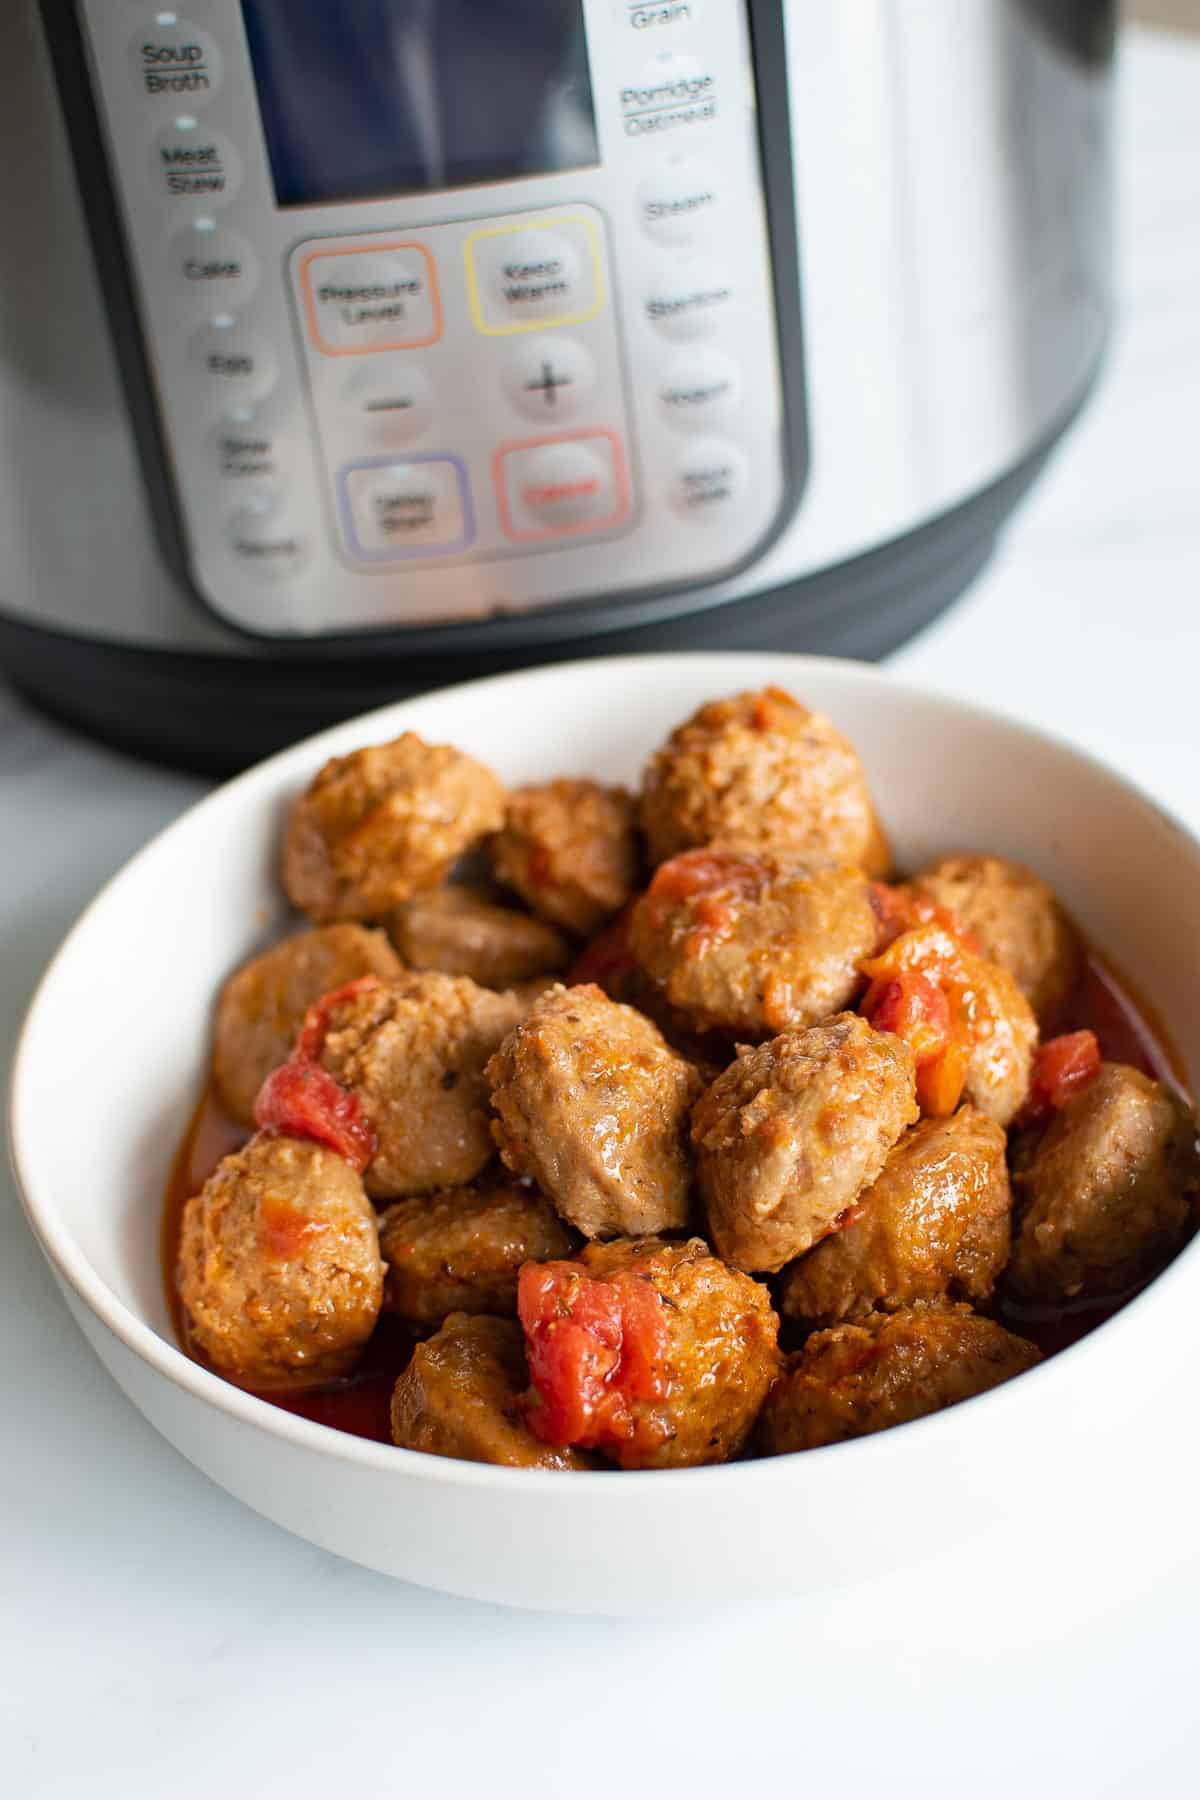 A bowl of meatballs in front of an instant pot.